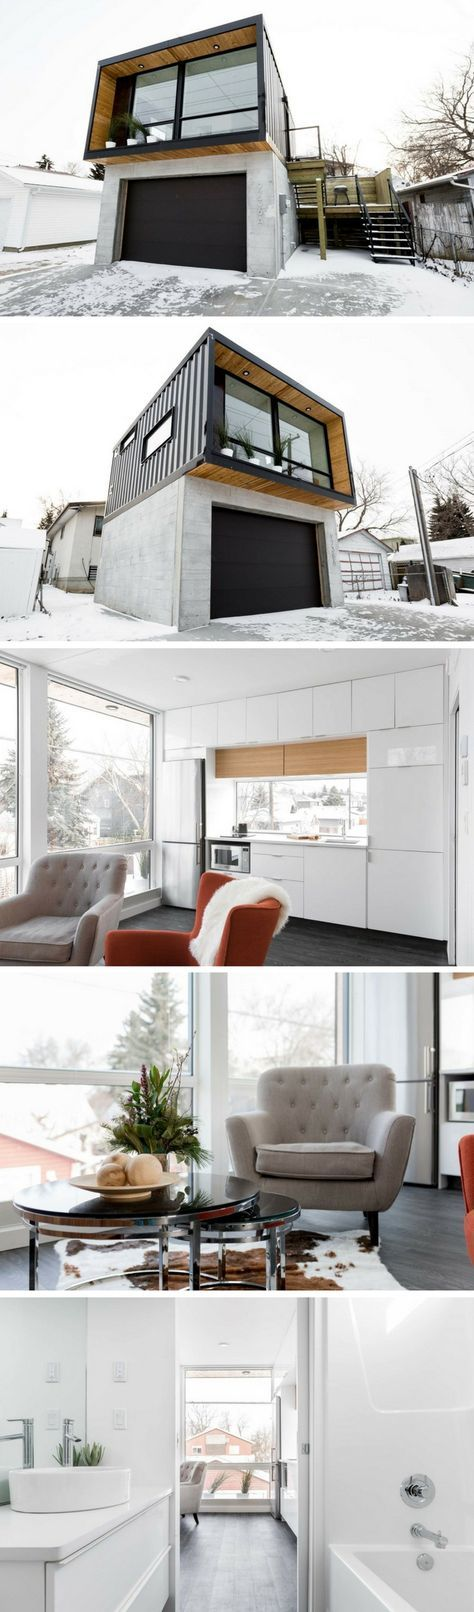 757 best Cool house images on Pinterest | Container homes, Container ...